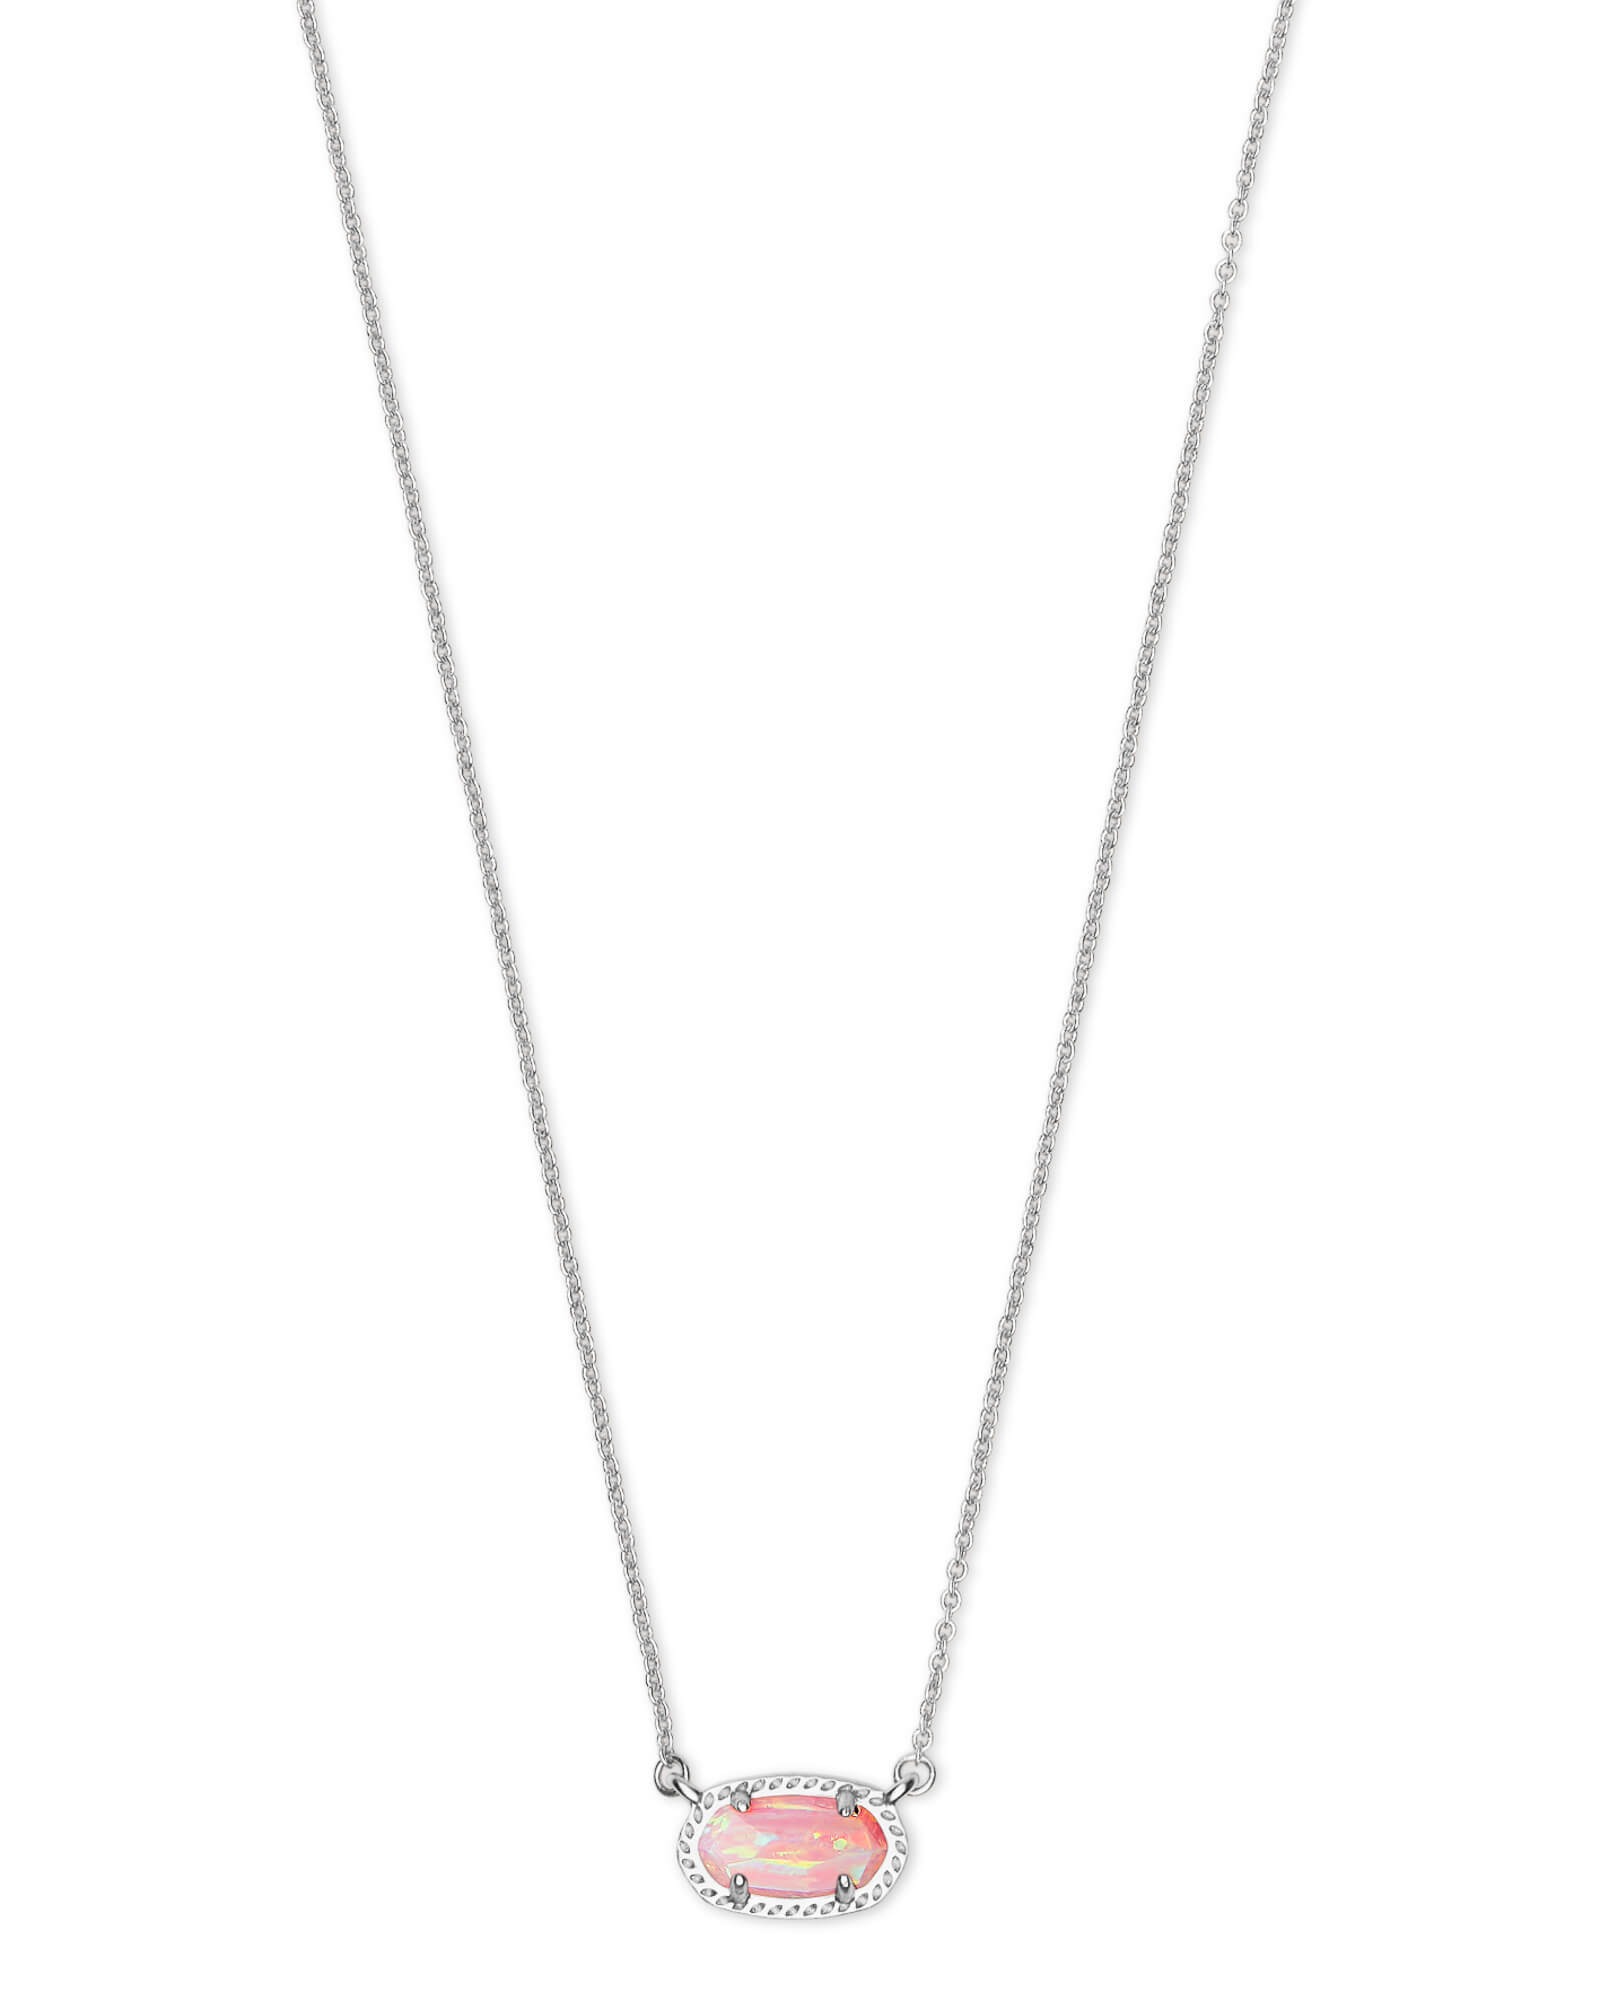 ce0d898ac56898 Ember Silver Pendant Necklace in Light Pink Opal | Kendra Scott